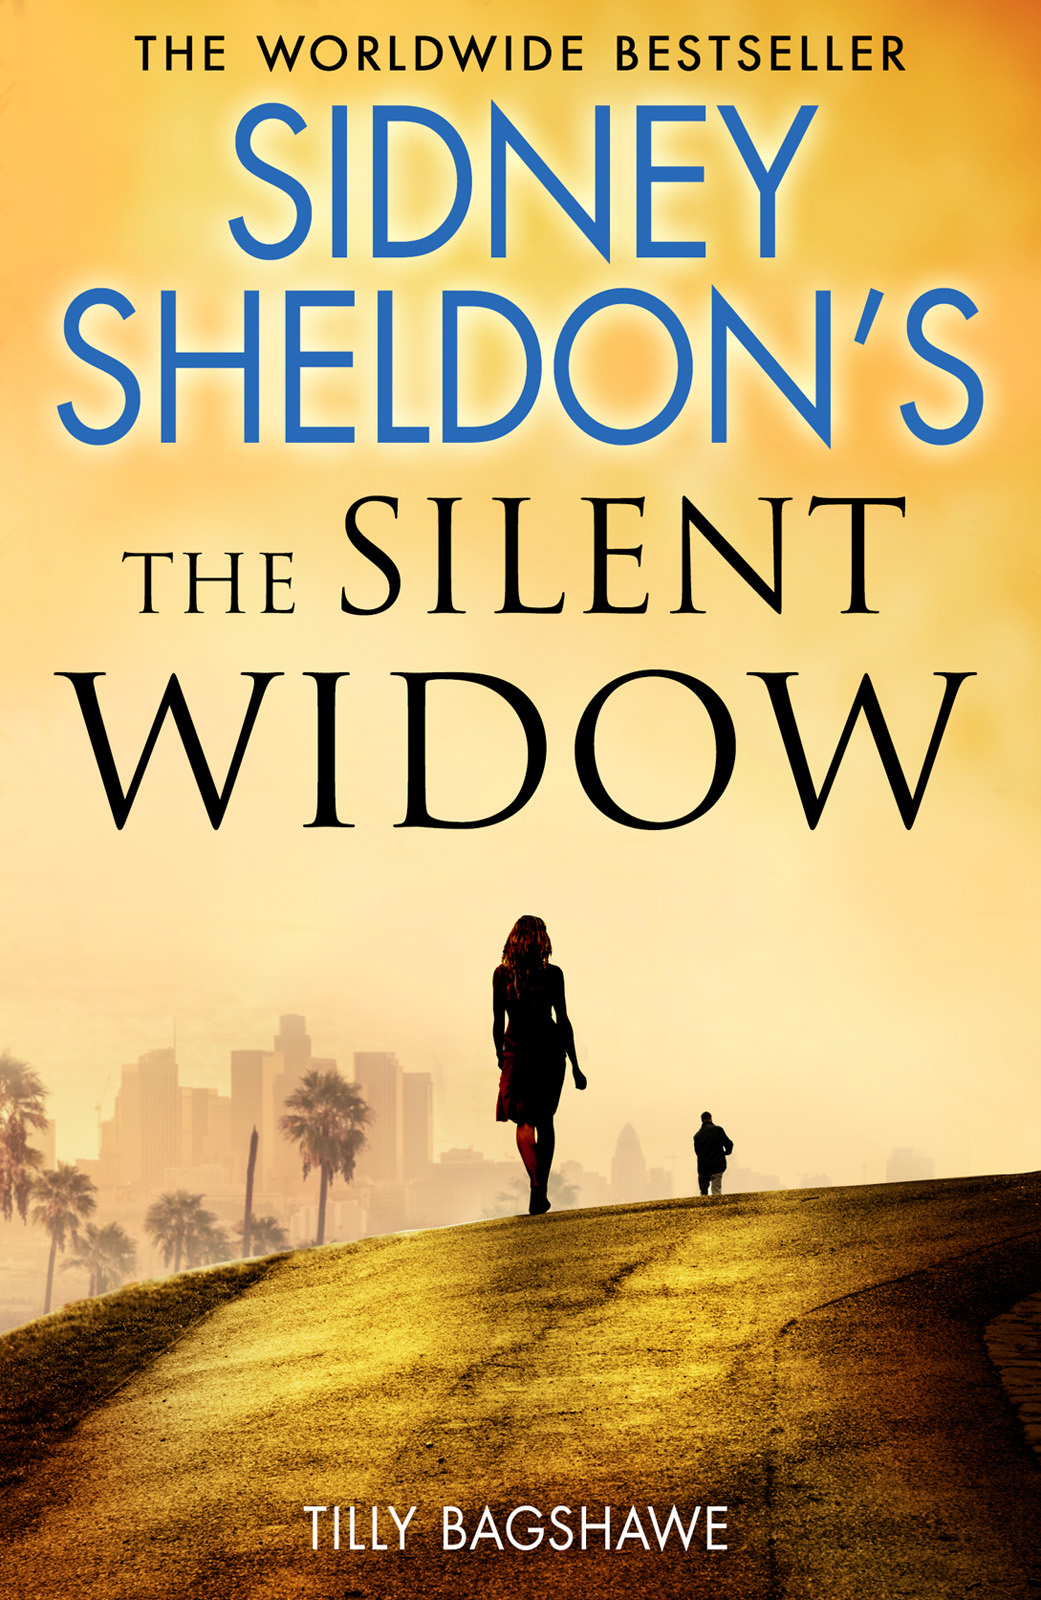 Сидни Шелдон Sidney Sheldon's The Silent Widow: A gripping new thriller for 2018 with killer twists and turns marion lennox nikki and the lone wolf mardie and the city surgeon nikki and the lone wolf mardie and the city surgeon